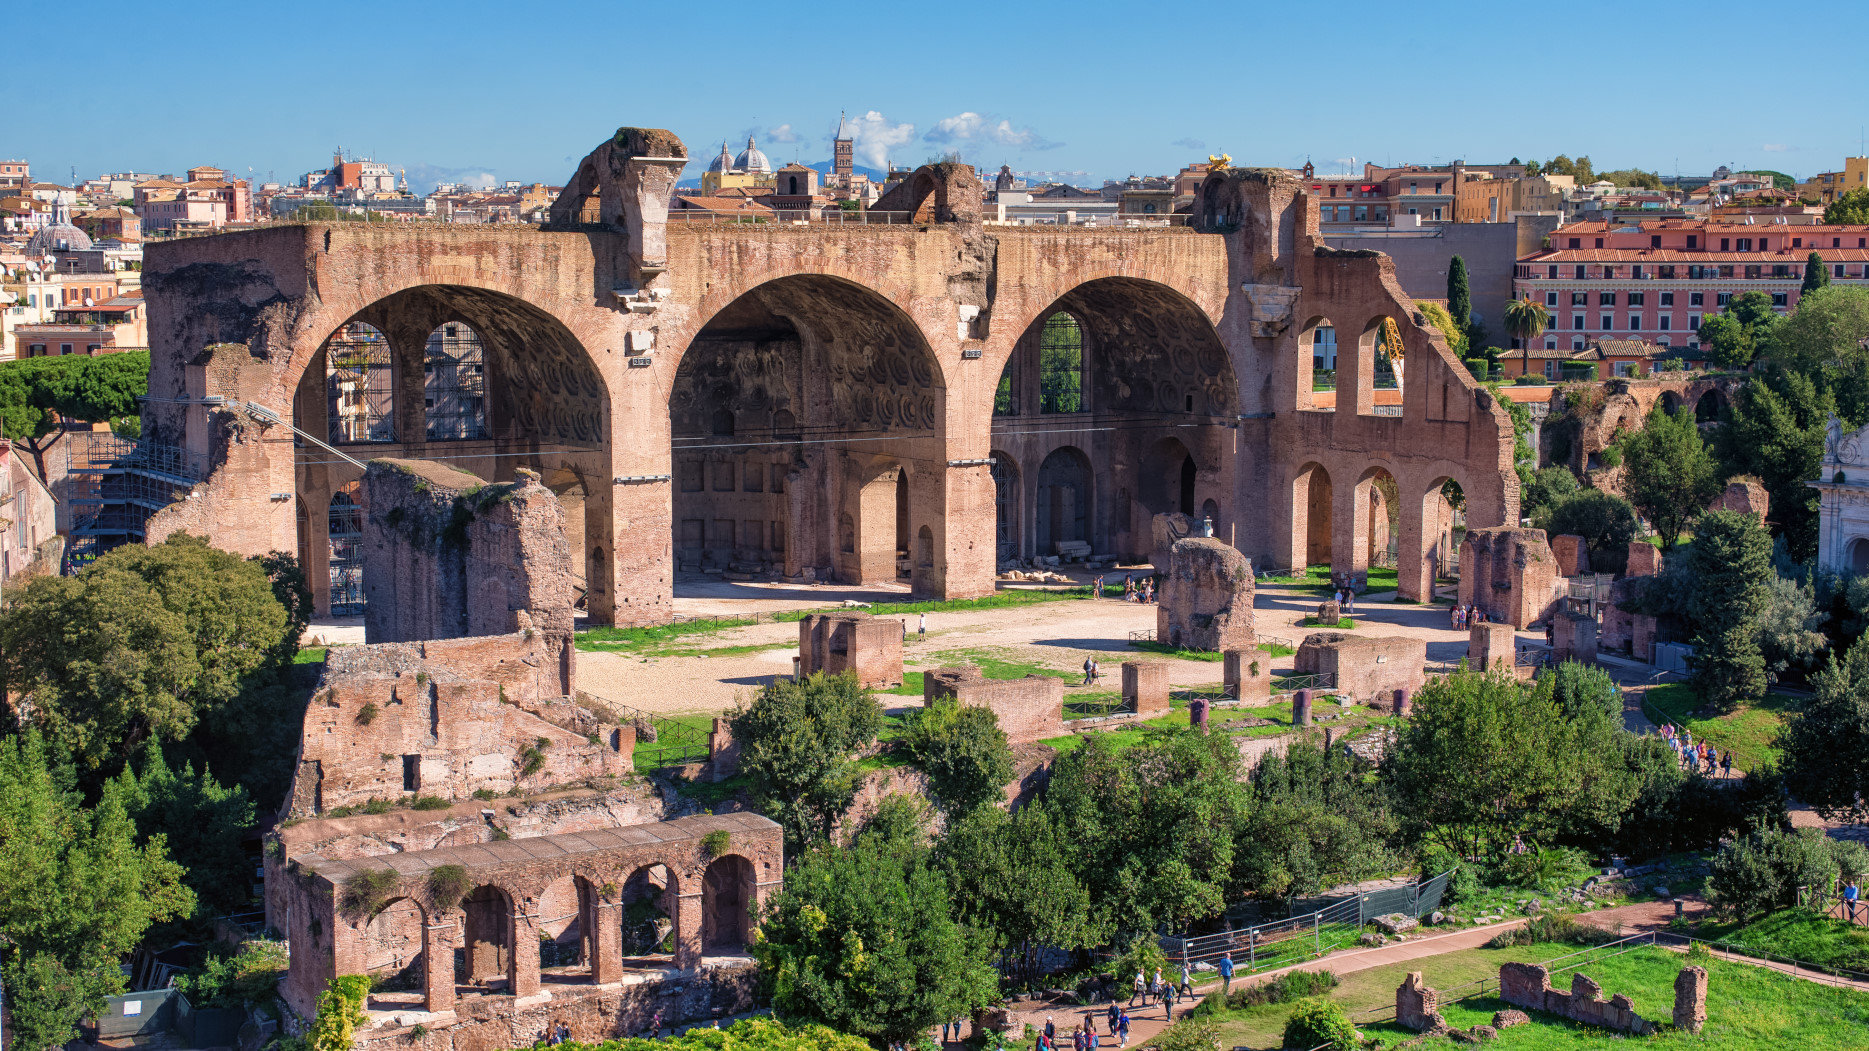 Red stone Basilica of Maxentius with arcs in Rome, Italy